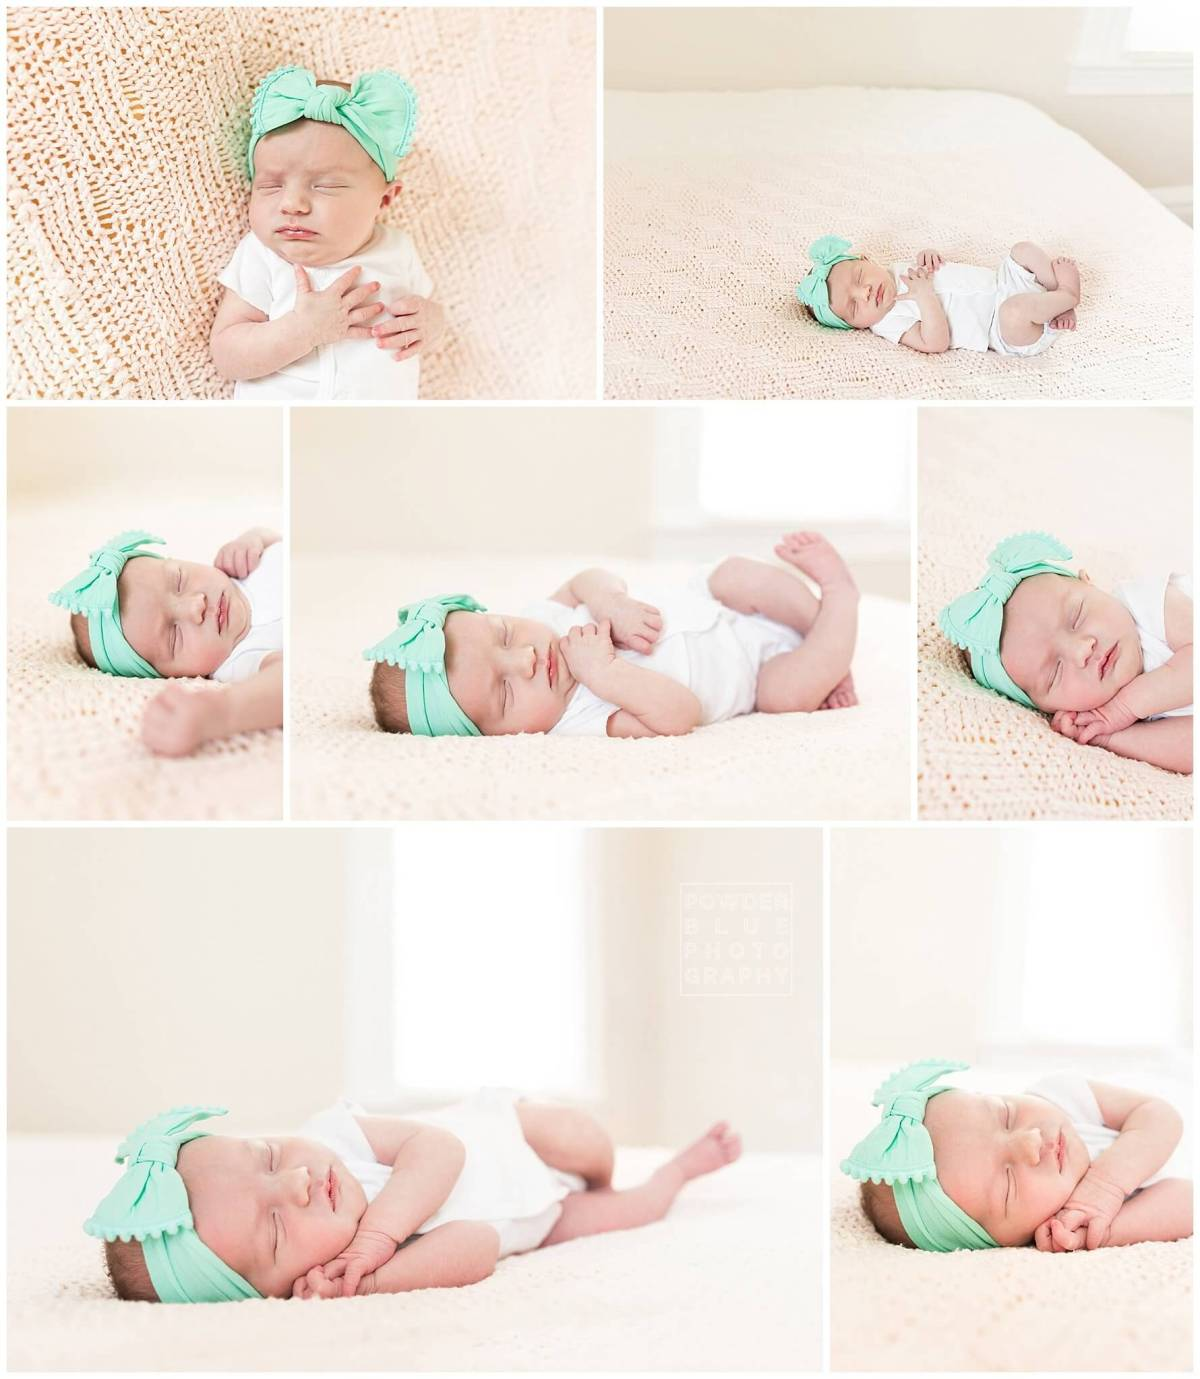 lifestyle newborn images on a bed using window light and fill flash.  newborn baby girl wearing green headband and a white kimono onesie.